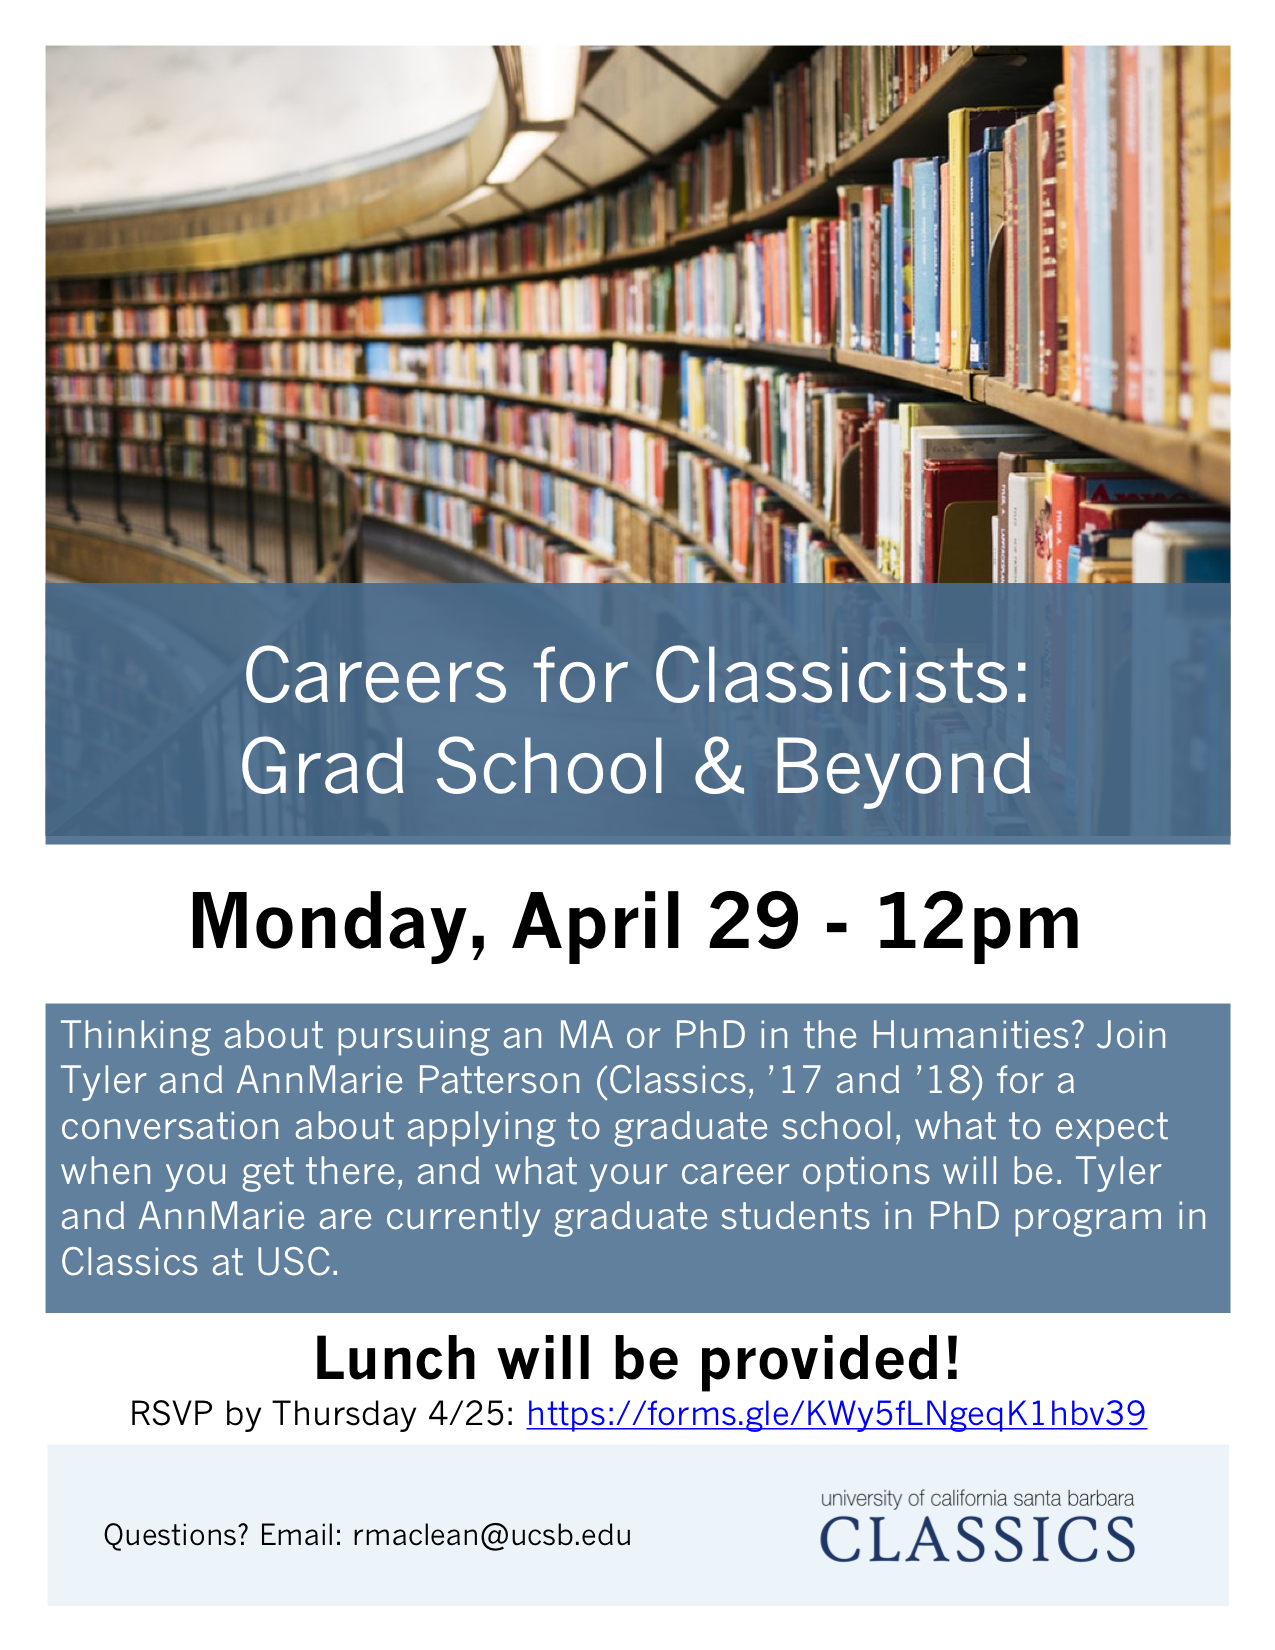 Careers for Classicists: Grad School & Beyond - A Conversation with Tyler and AnnMarie Patterson @ Classics Lounge - HSSB 4072